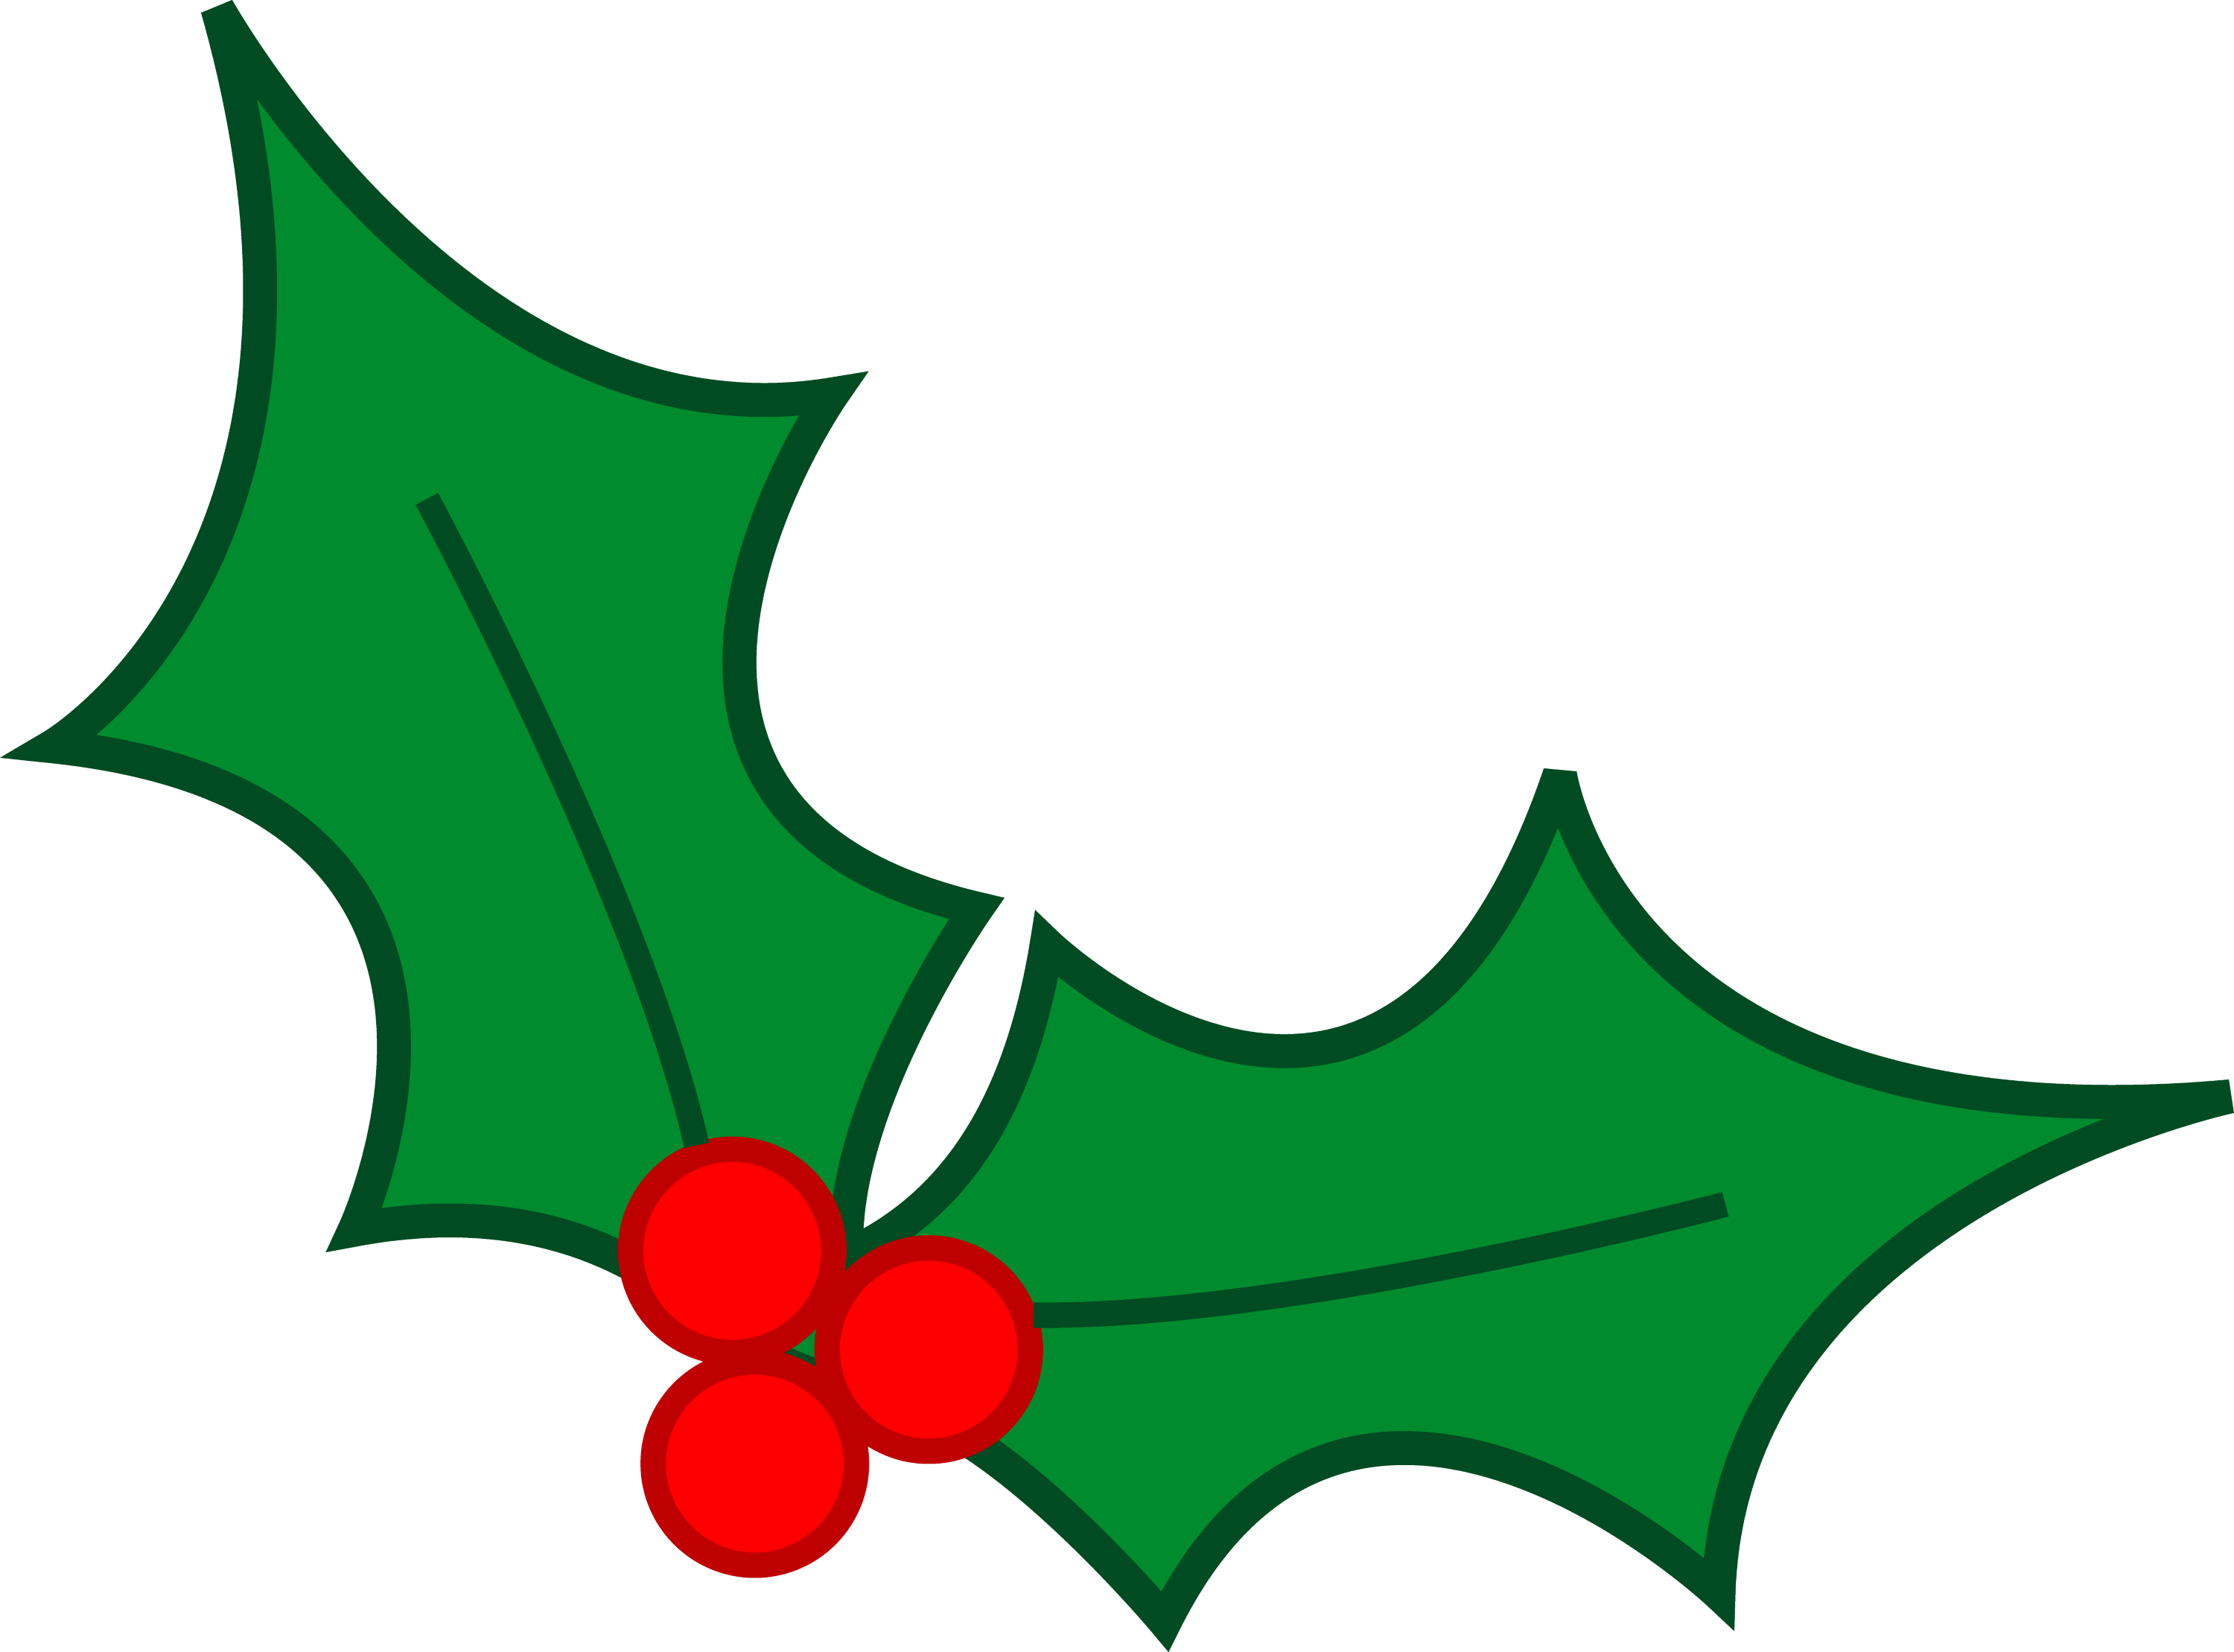 https://i0.wp.com/sweetclipart.com/multisite/sweetclipart/files/holidays_christmas_holly_1.png